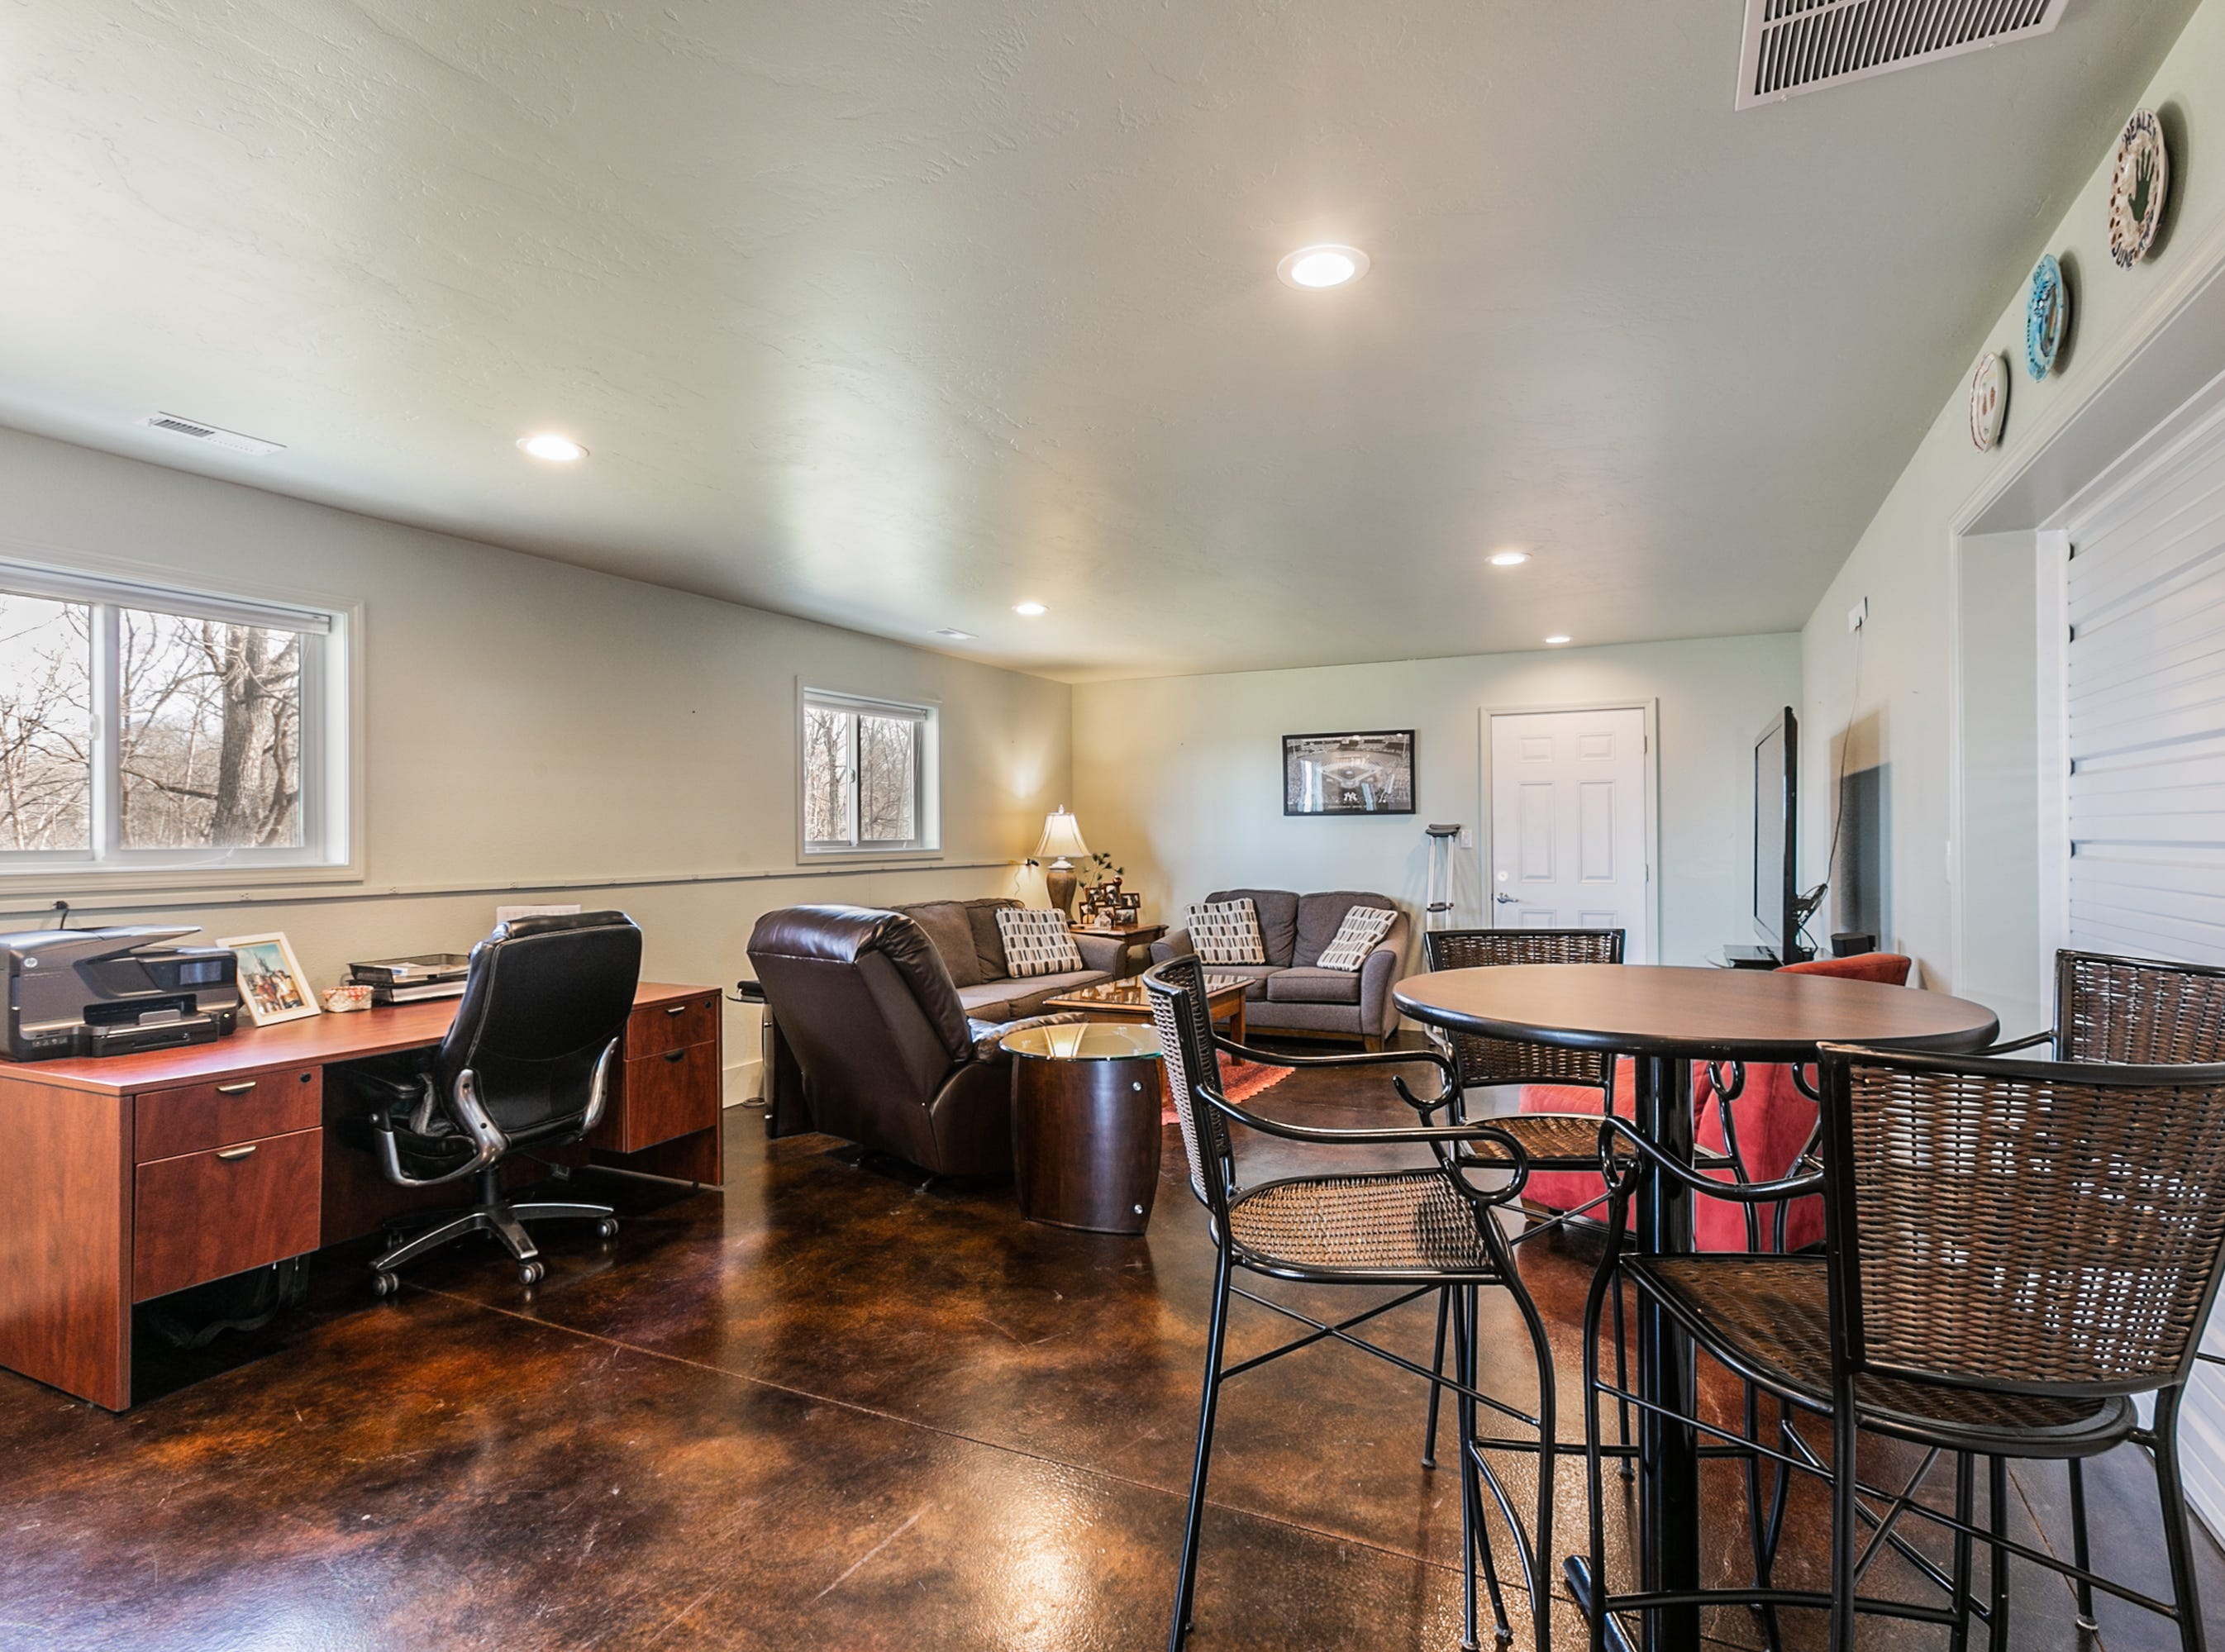 The Grahams created a man cave out of a second garage. With a large garage door and finished concrete floors, it easily could be reverted back to garage space.